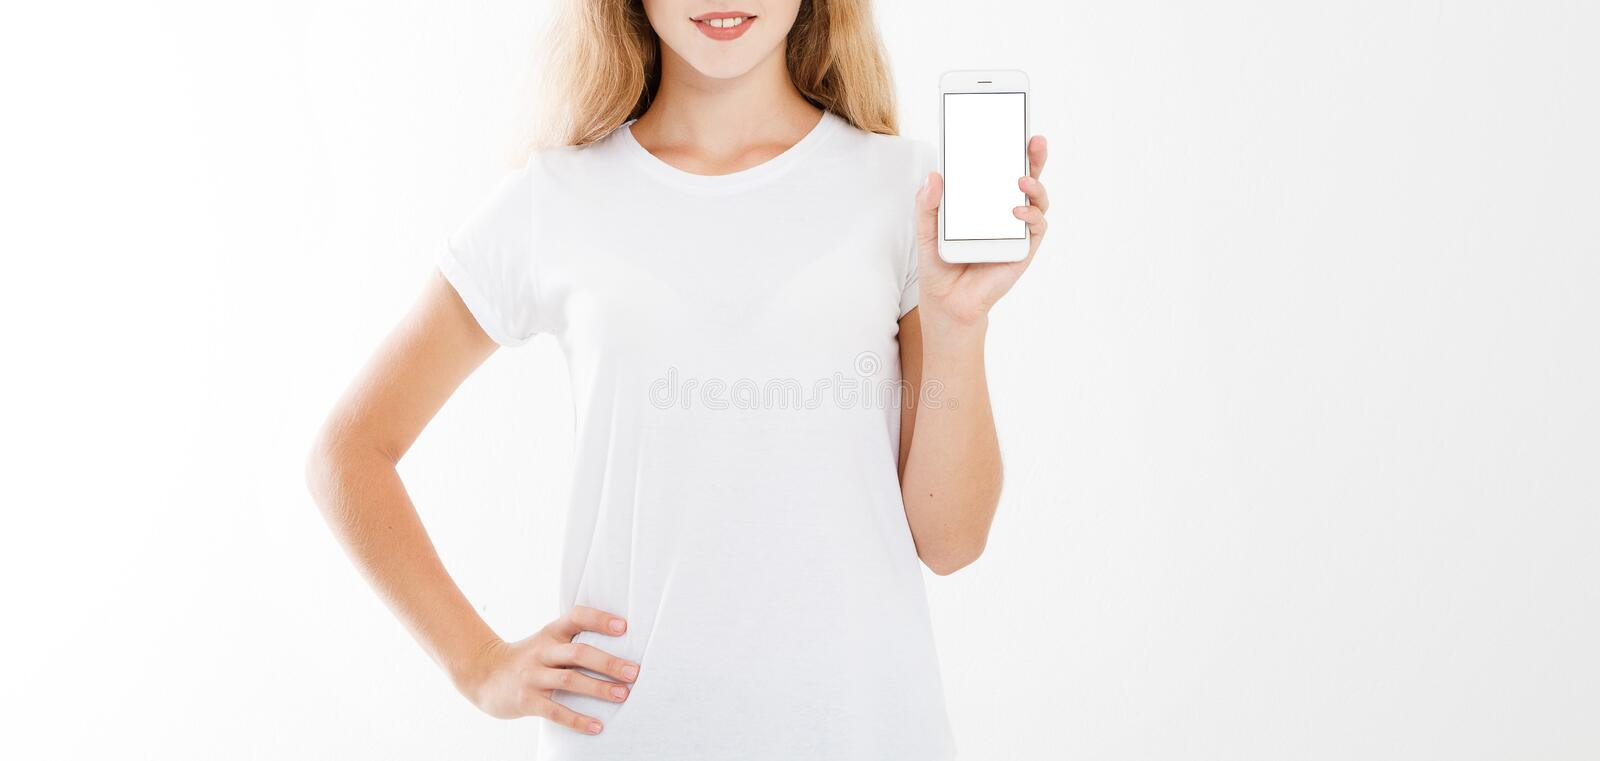 Girl, woman in t-shirt holding blank screen mobile phone isolated on white background. Arm hold smartphone, copy space stock image